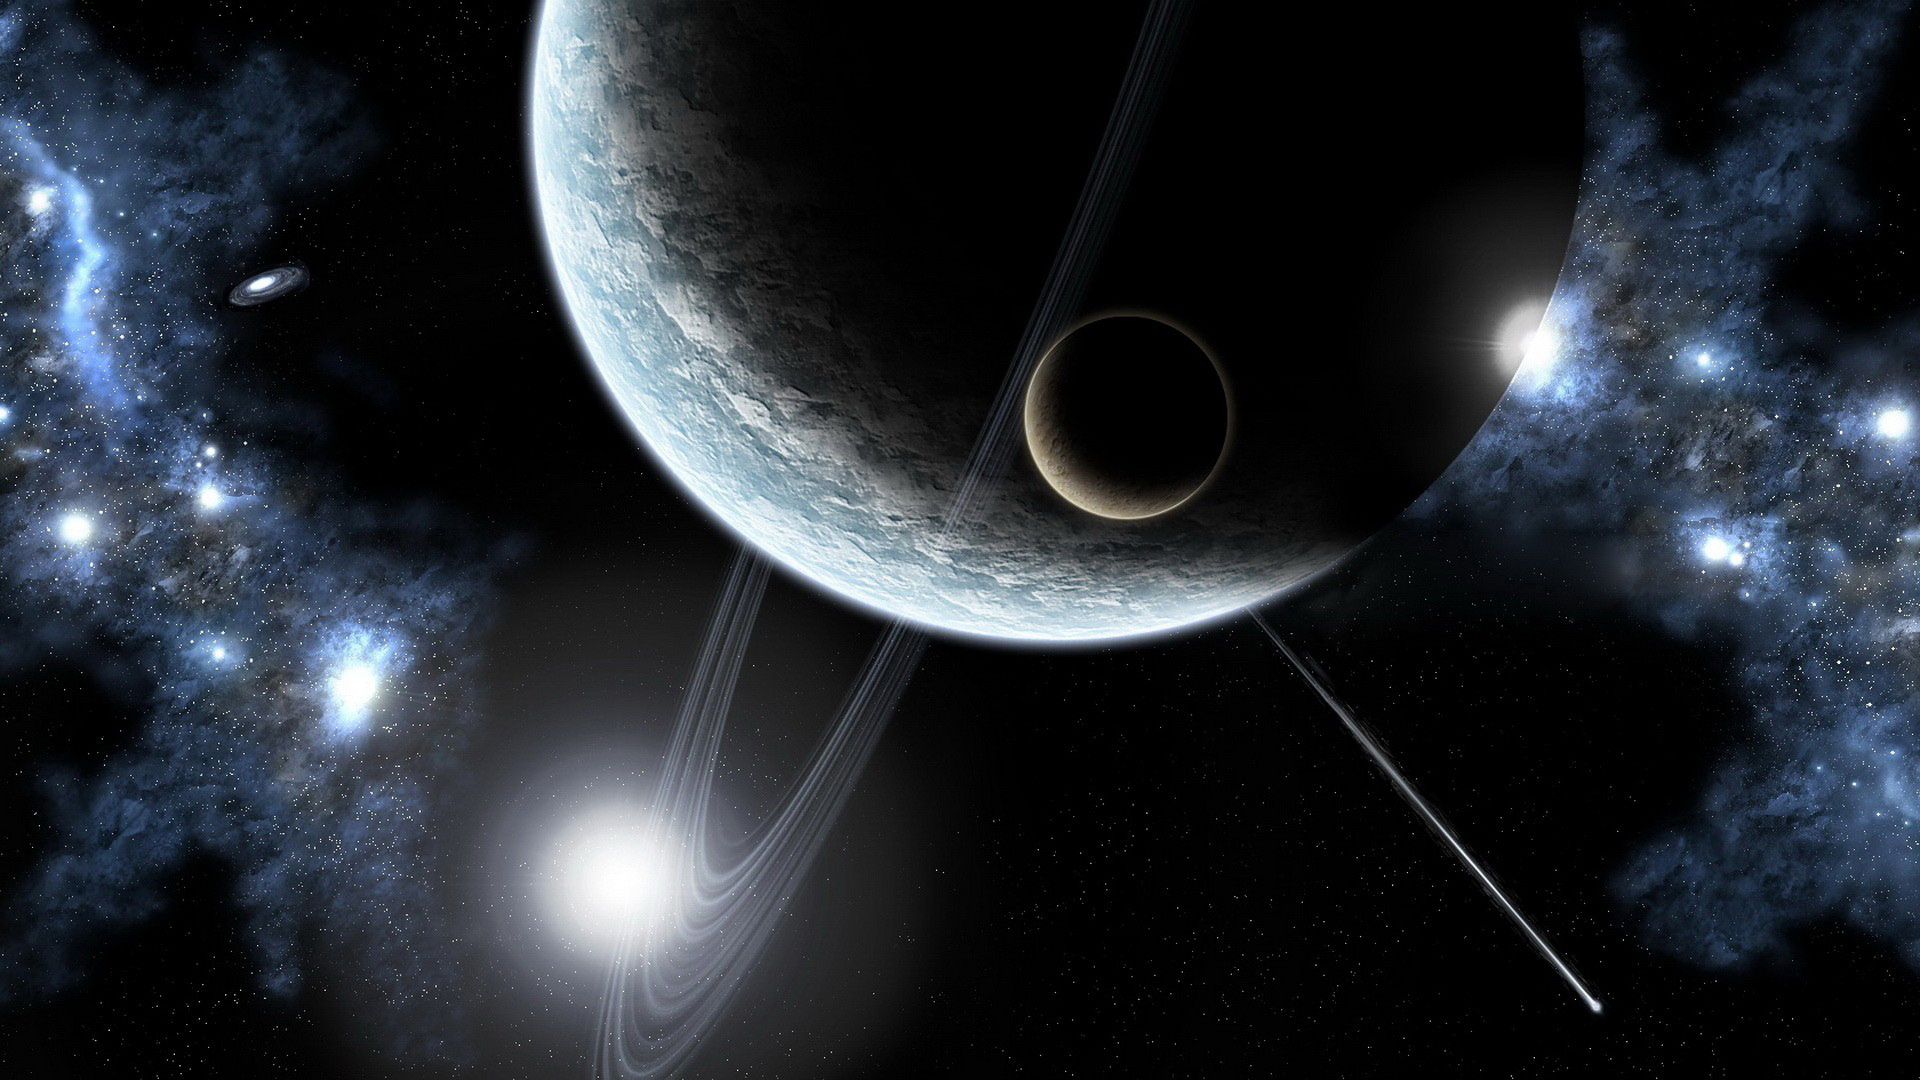 space planets images - photo #48